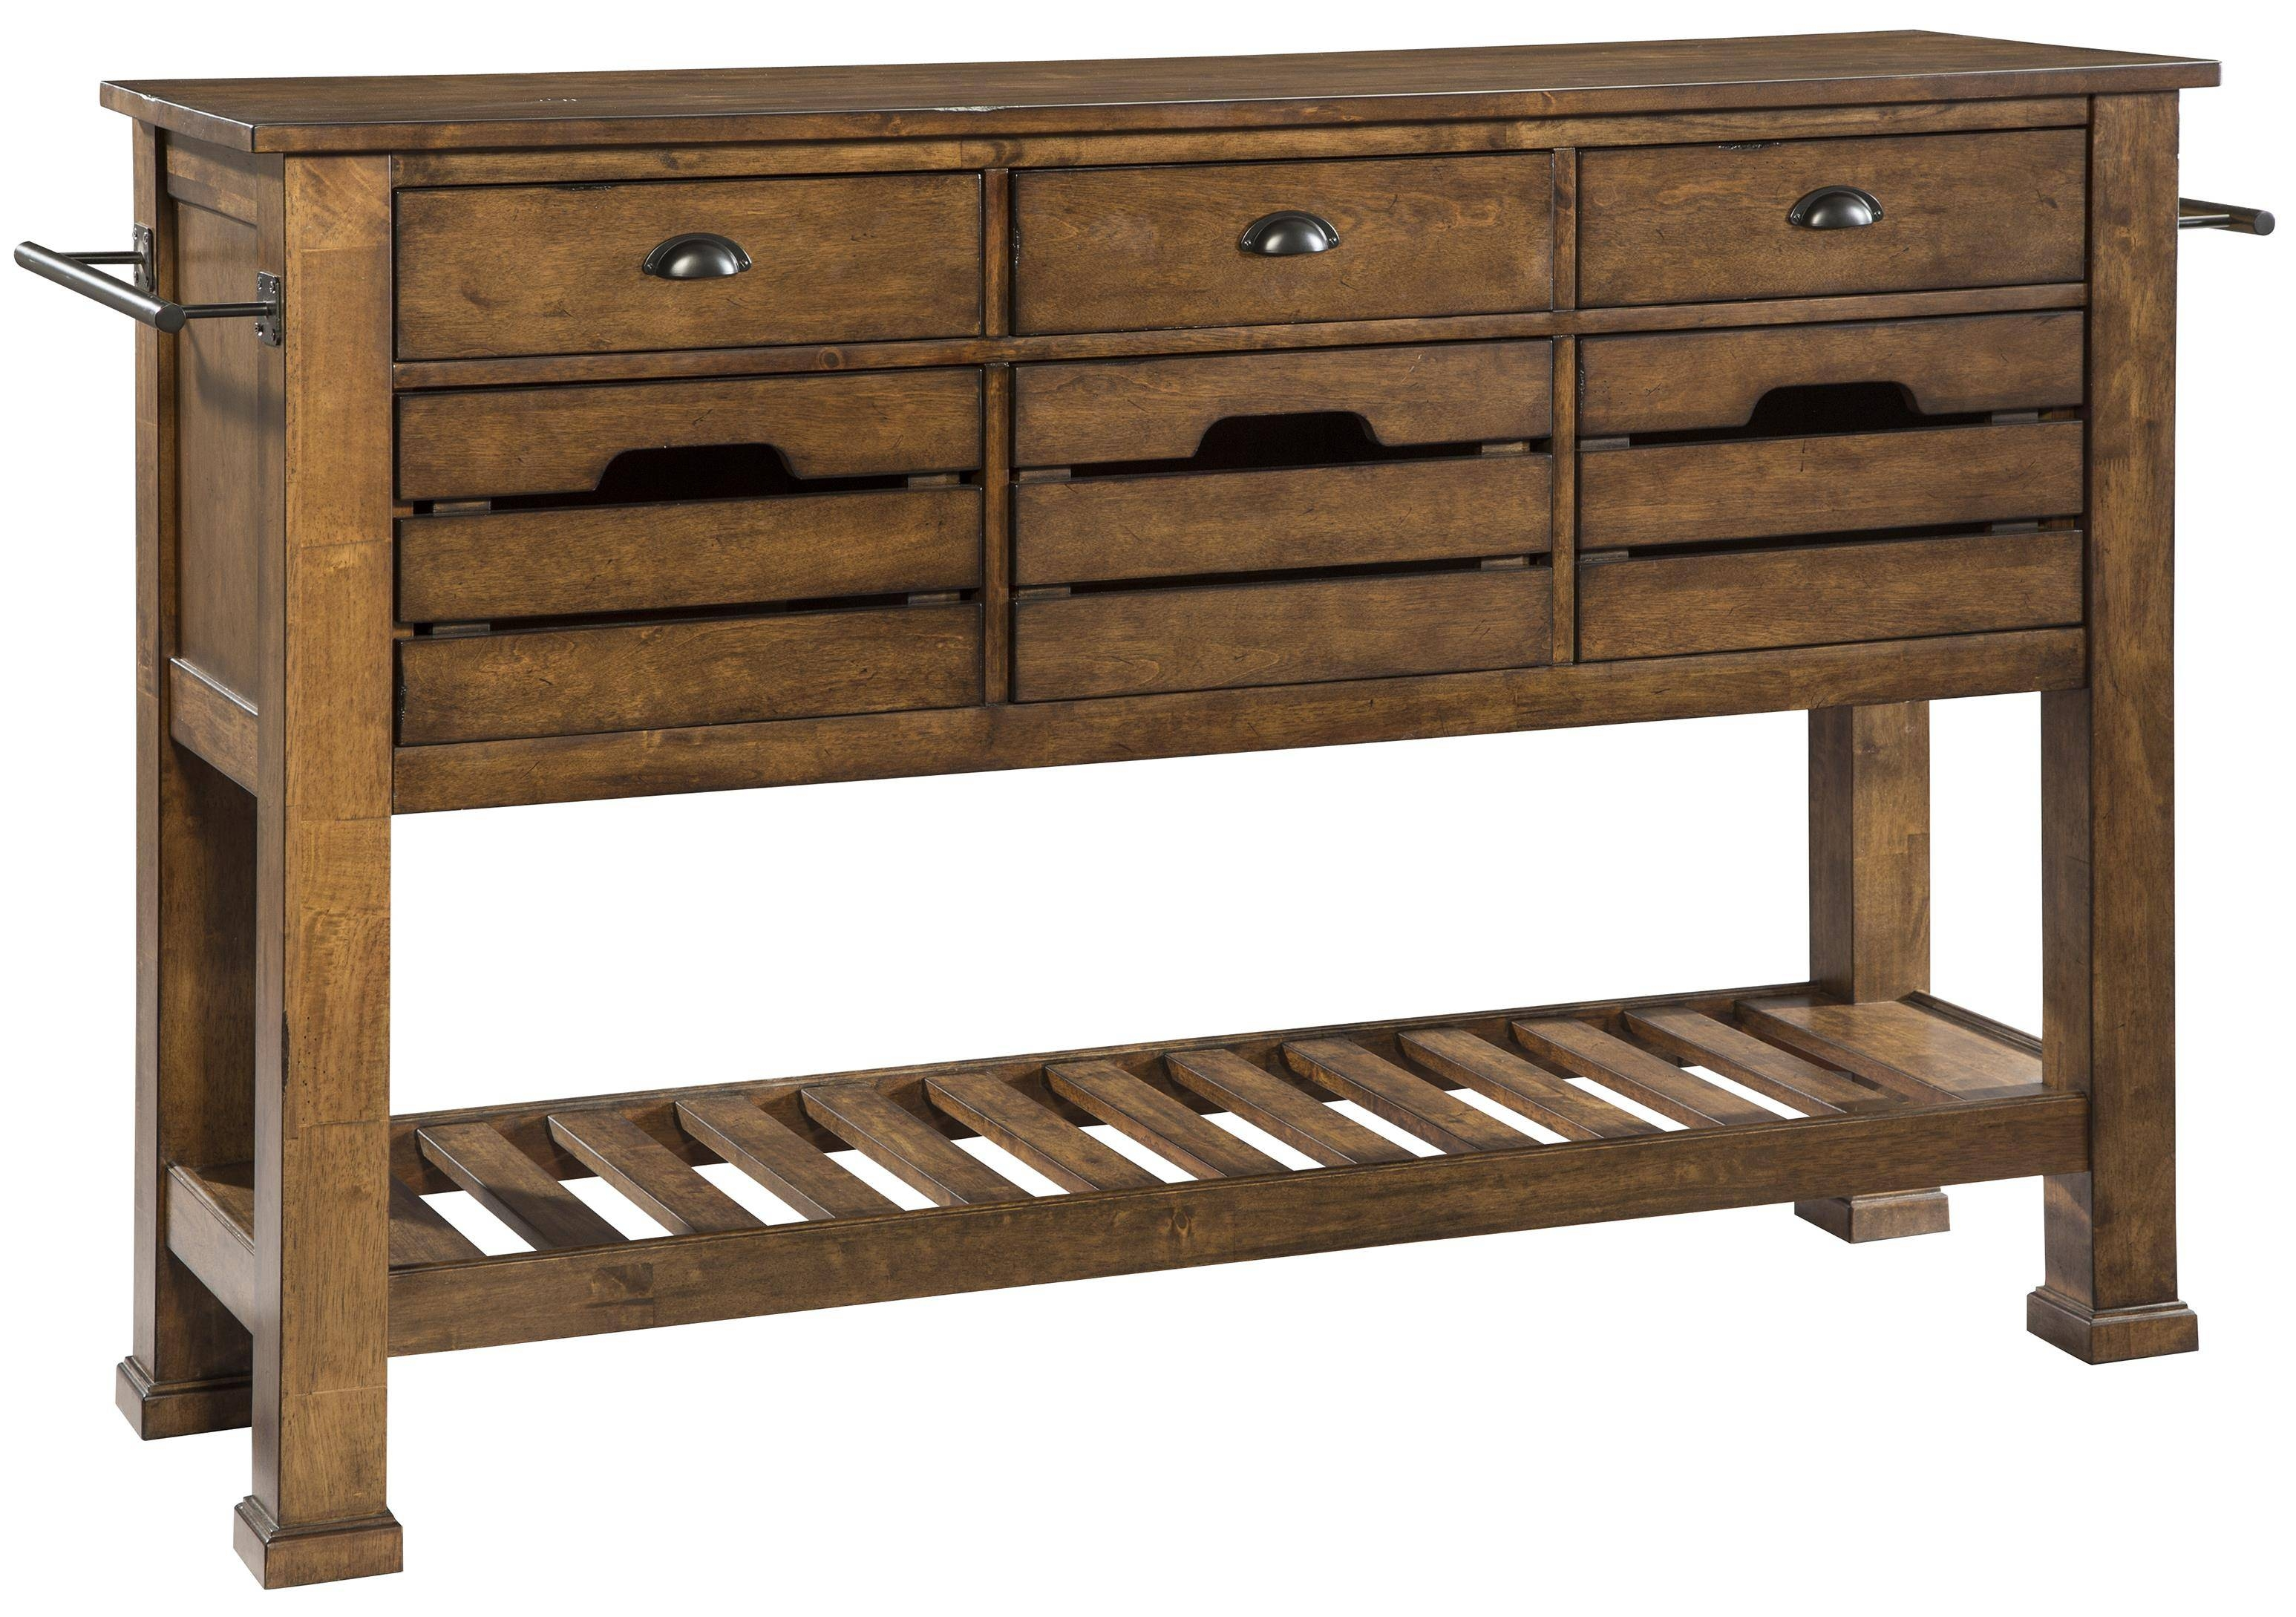 Intercon The District Sideboard With Tall Legs   Wayside Furniture With Most Current Ronan Sideboards (View 4 of 15)